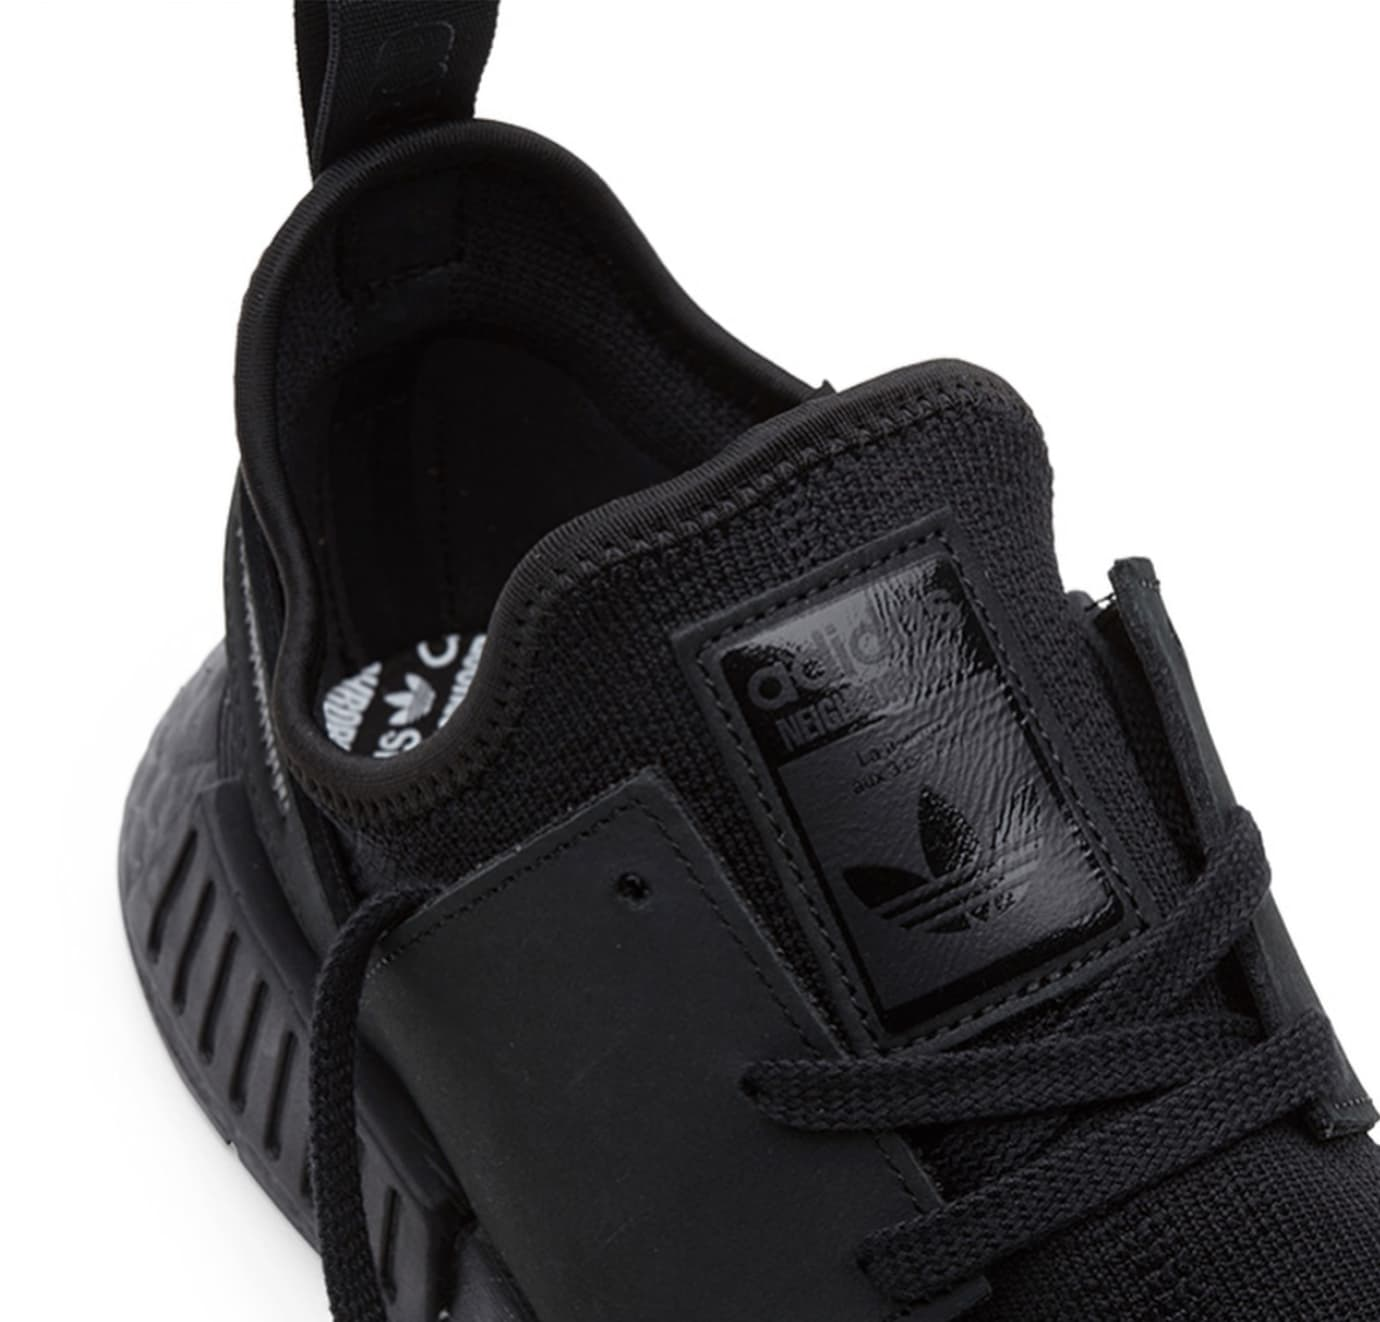 100% authentic 50625 cd493 Neighborhood x Adidas NMD_R1 PK 'Triple Black' Release Date ...